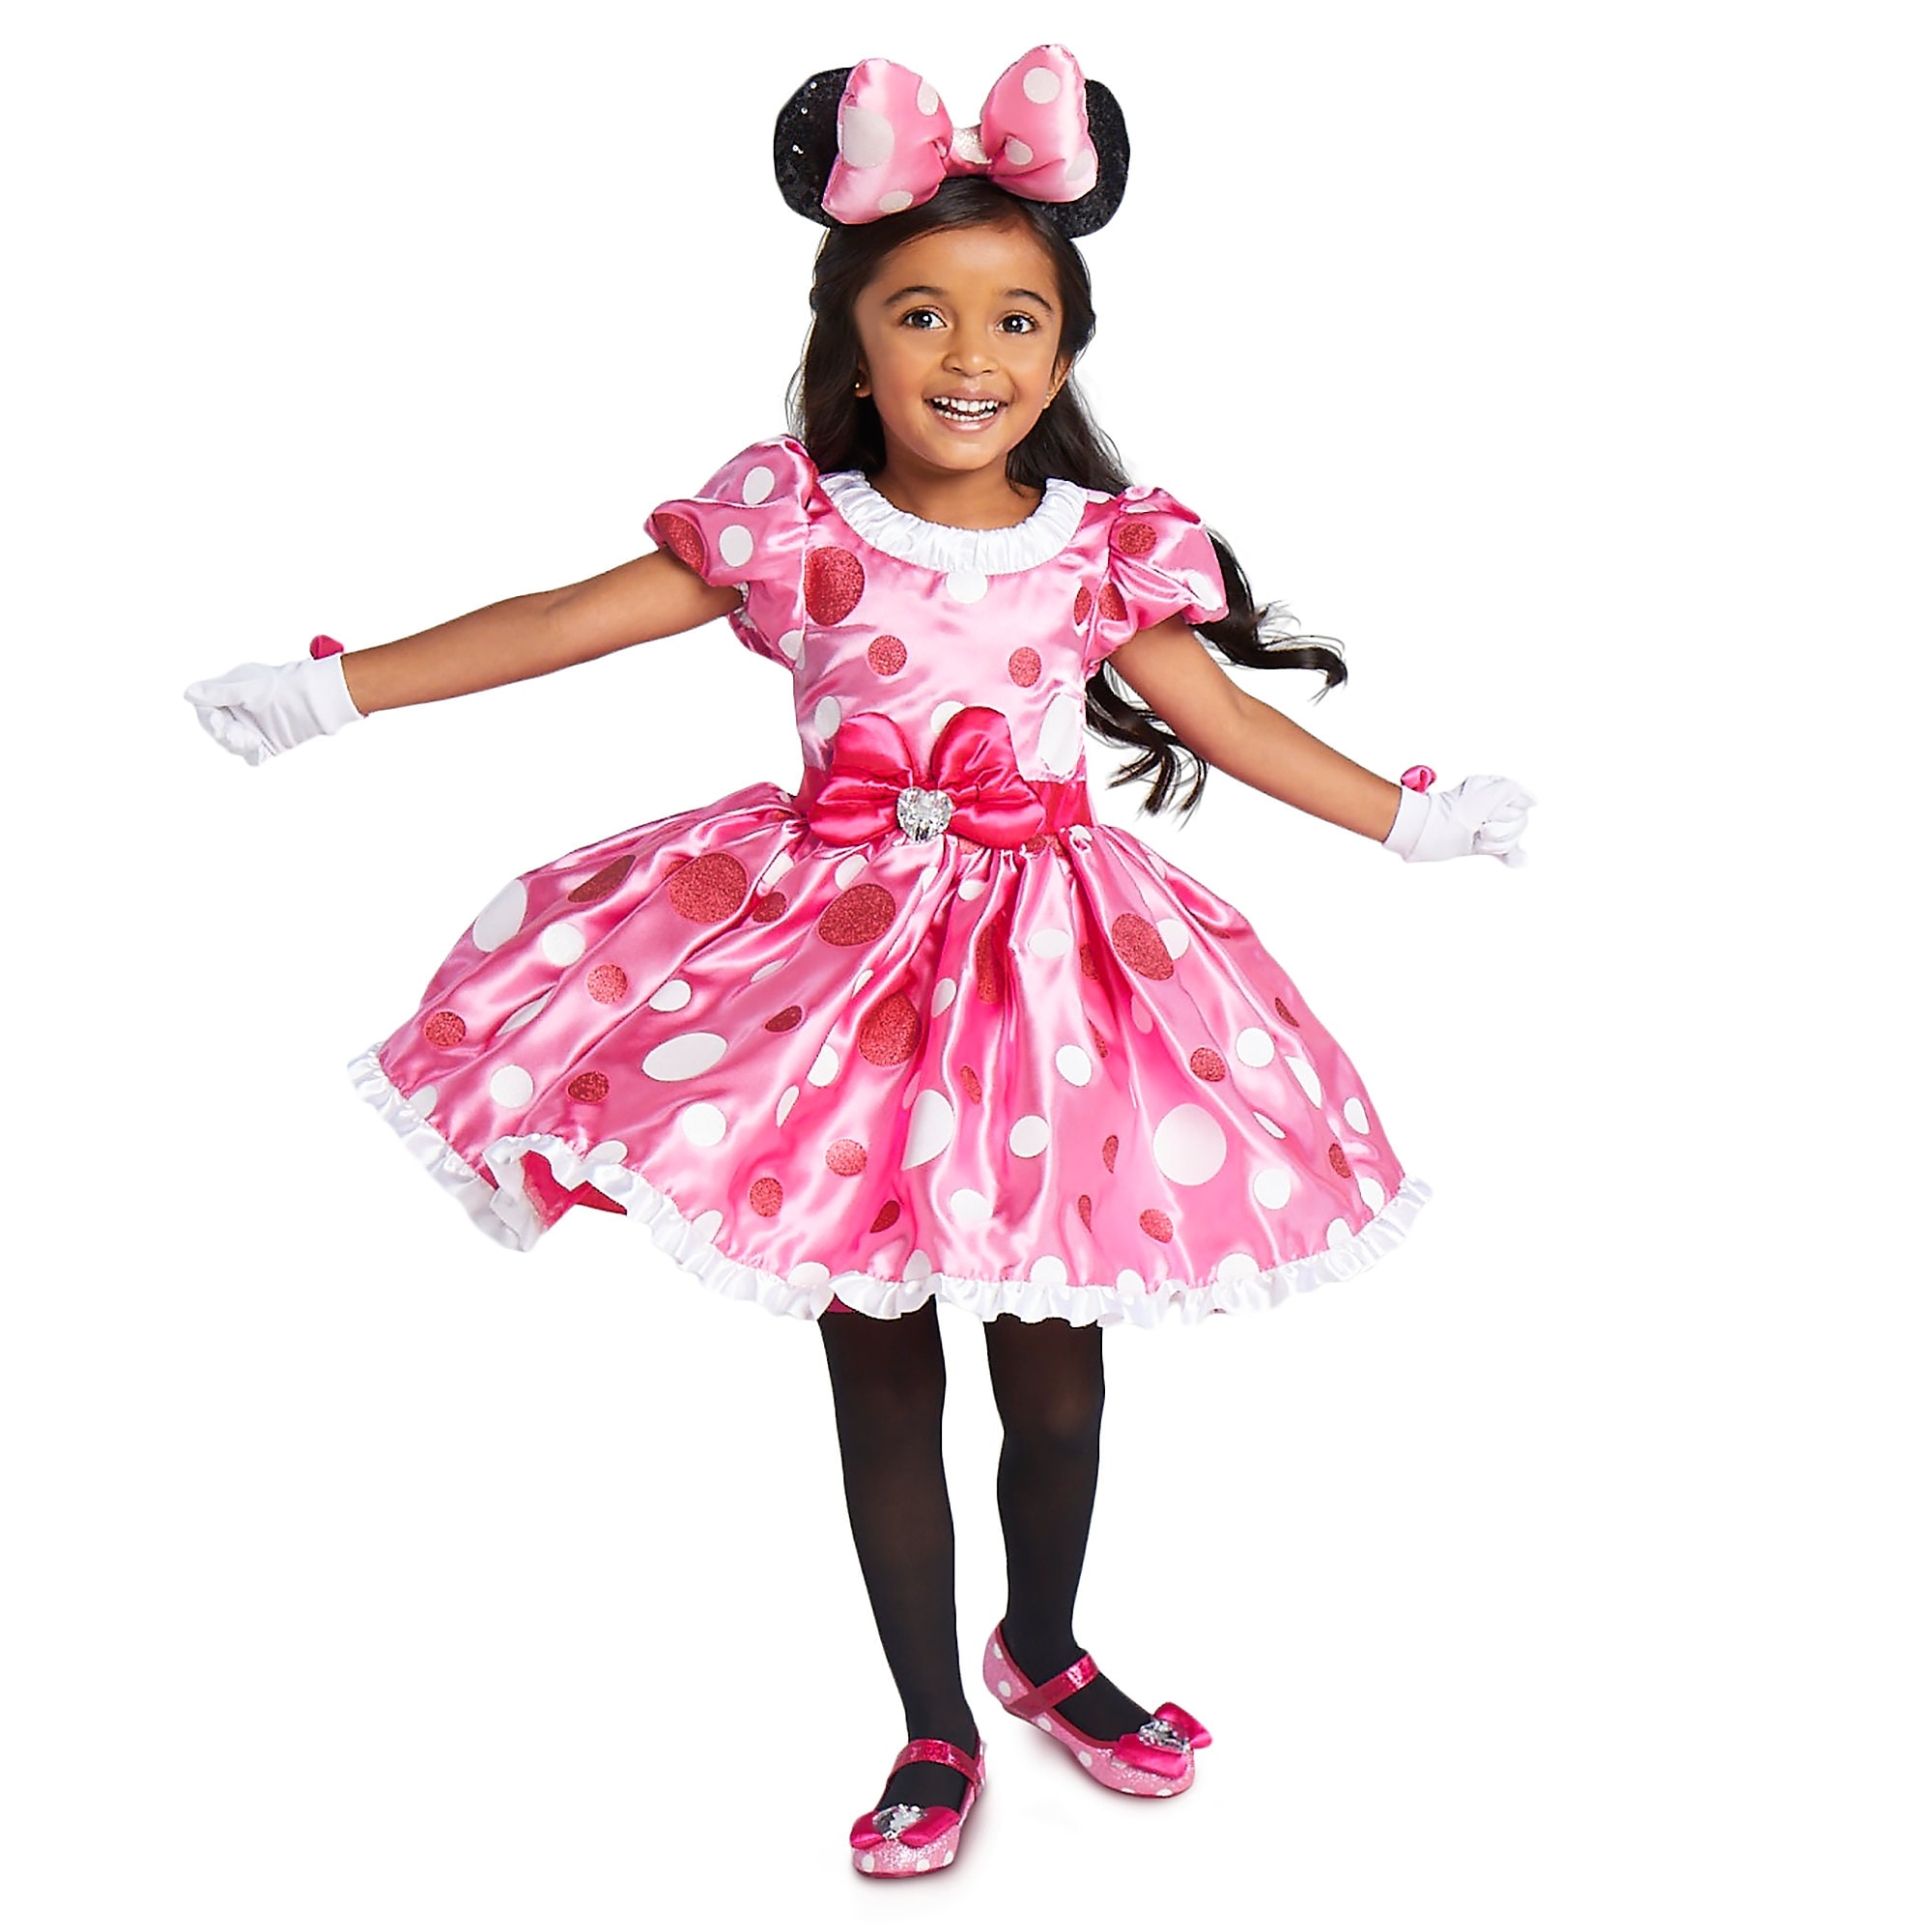 cb07333d0 Pink Minnie Mouse Costume Toddler & Minnie Mouse Costume Collection ...